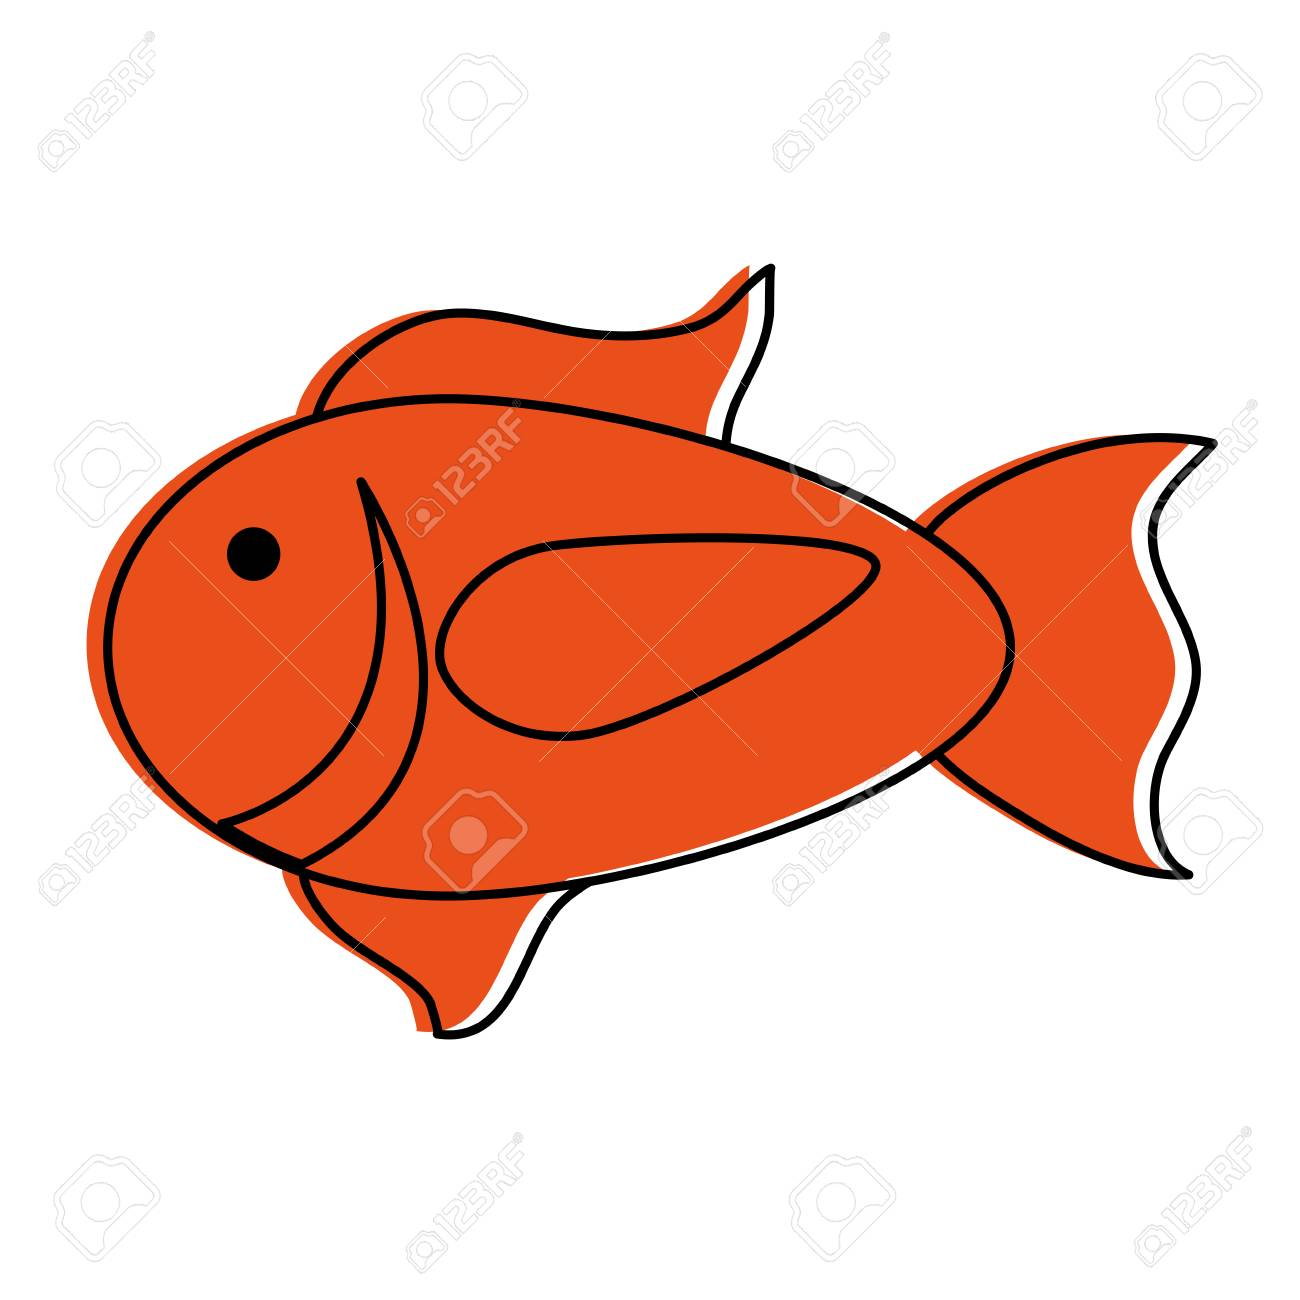 cartoon fish icon image vector illustration design orange color